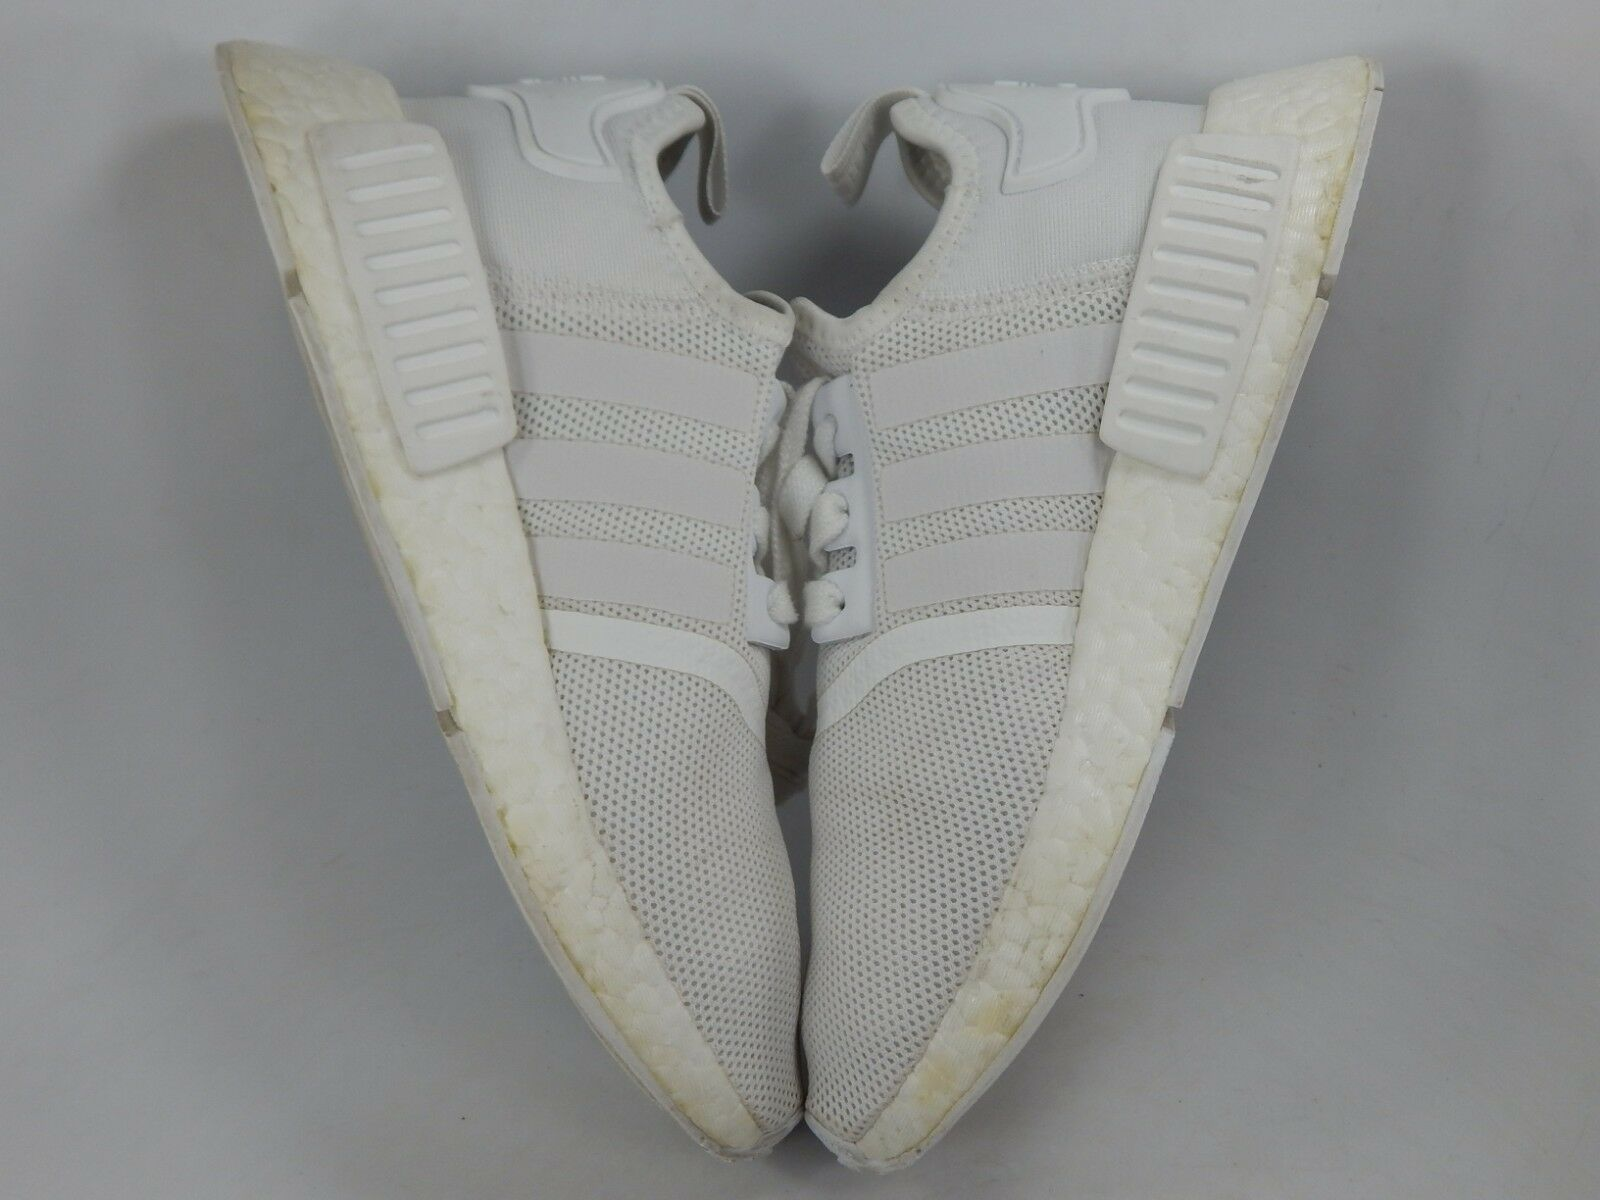 Adidas Nmd R1 Triple Blanc Taille 5 M (Y) Ue 37 1/3 Jeunesse Chaussures Course